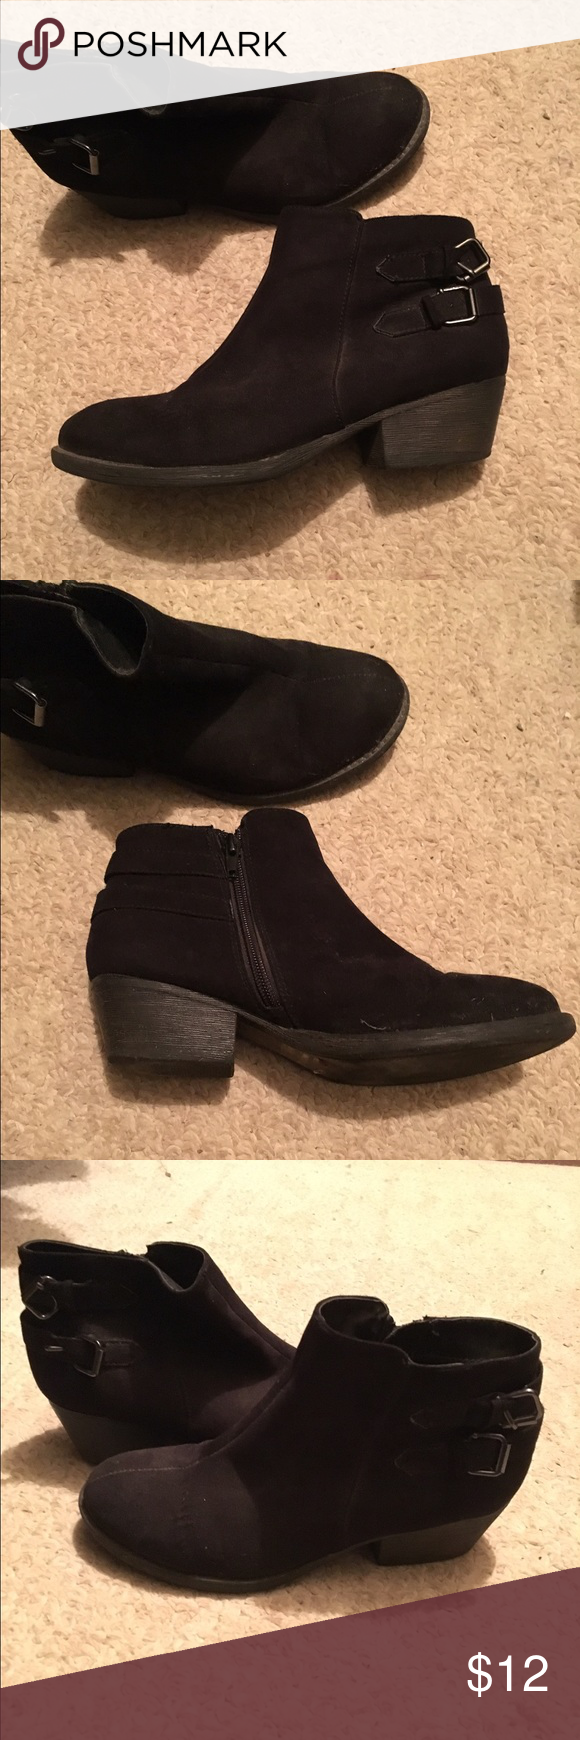 Black Booties Lightly worn black heeled booties PacSun Shoes Ankle Boots & Booties